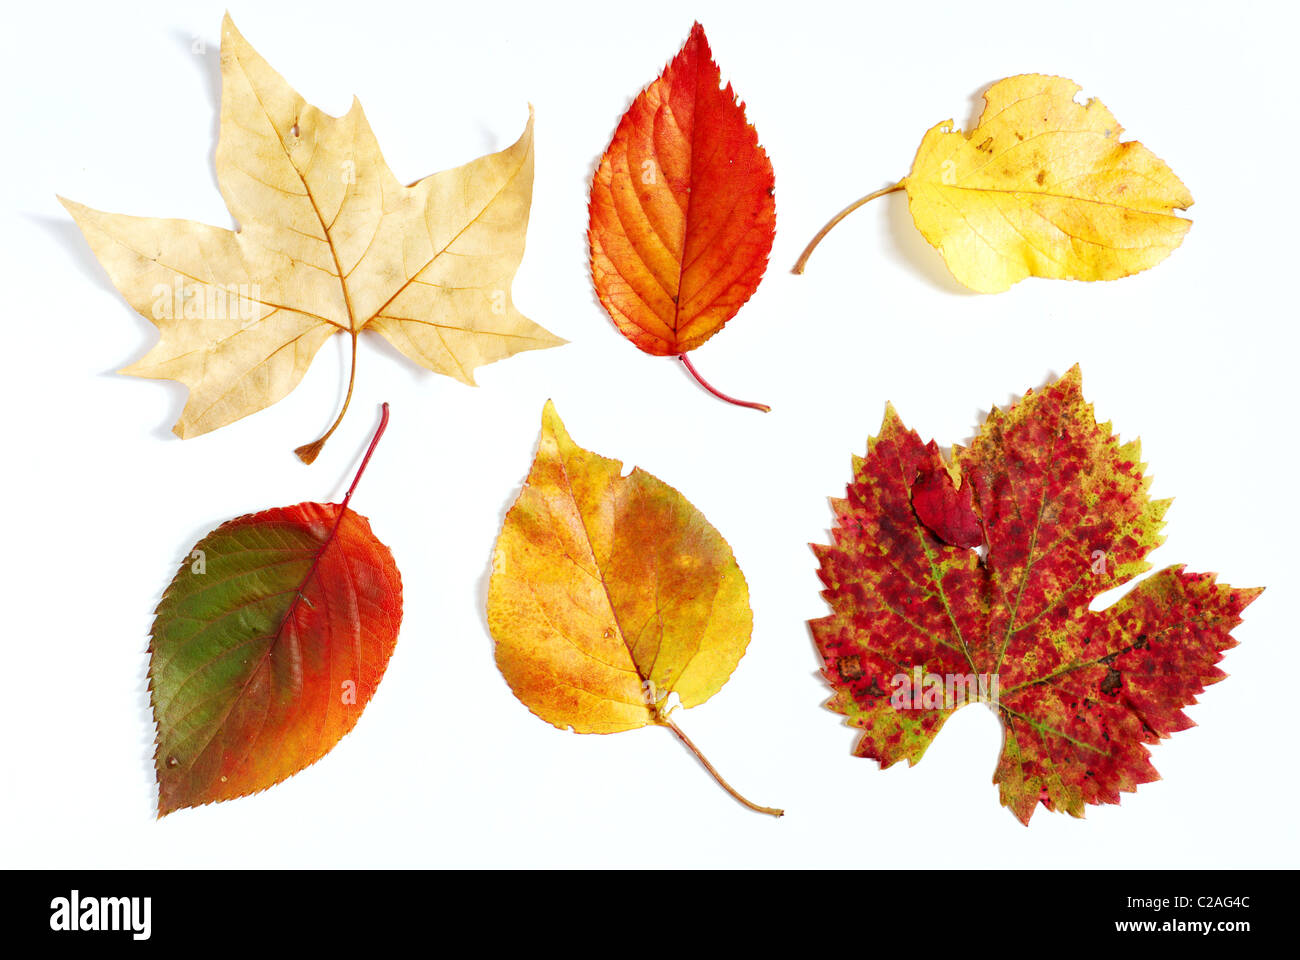 Variety of different fall color leaves photographed on white background - Stock Image